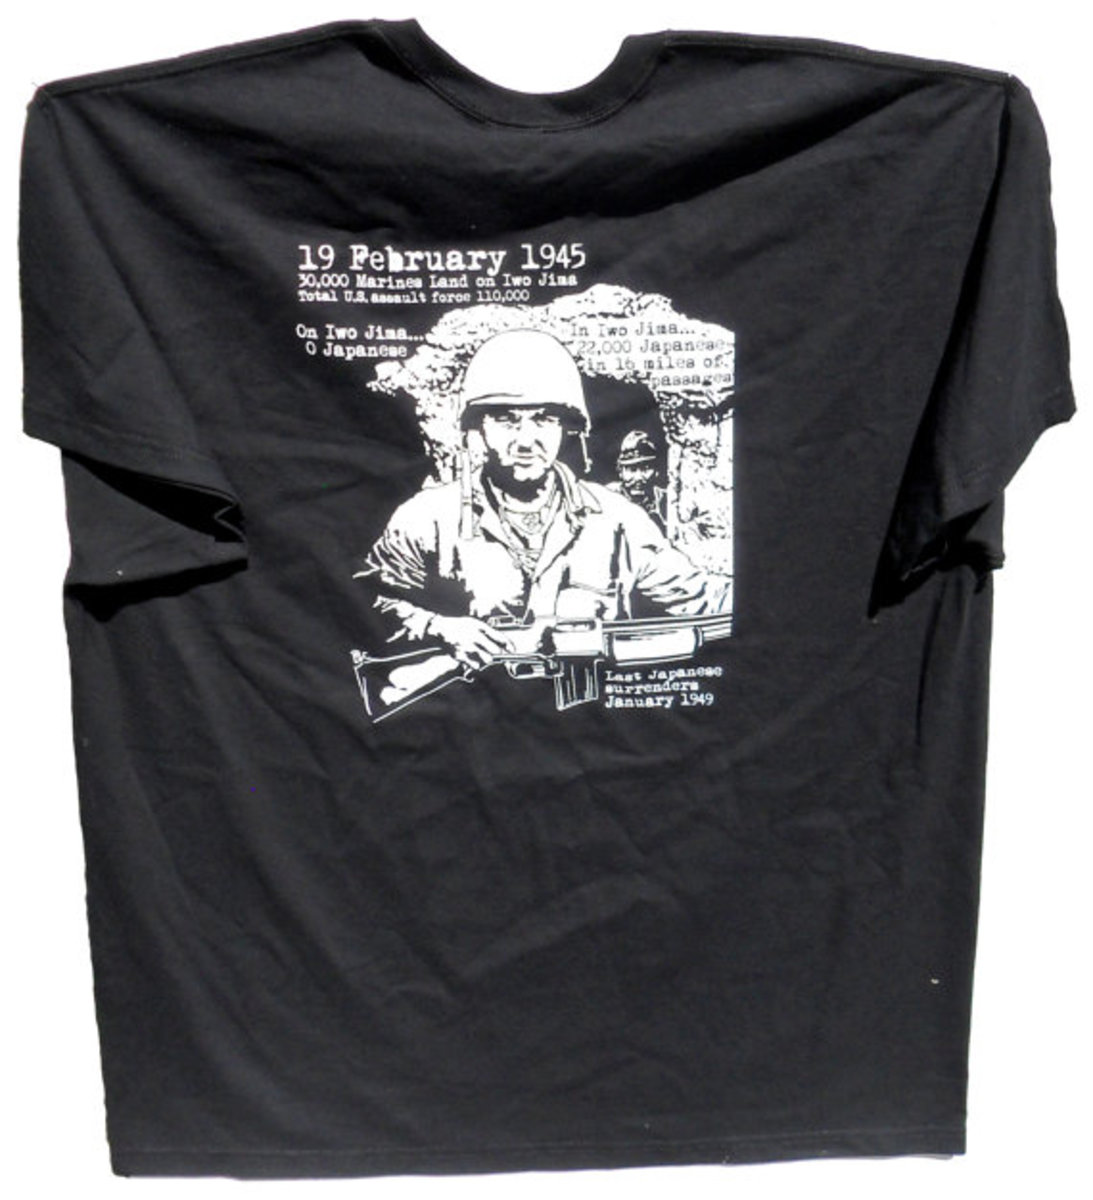 T-shirt commemorating the 70th anniversary, illustrating that the Japanese were in, not on, Iwo Jima